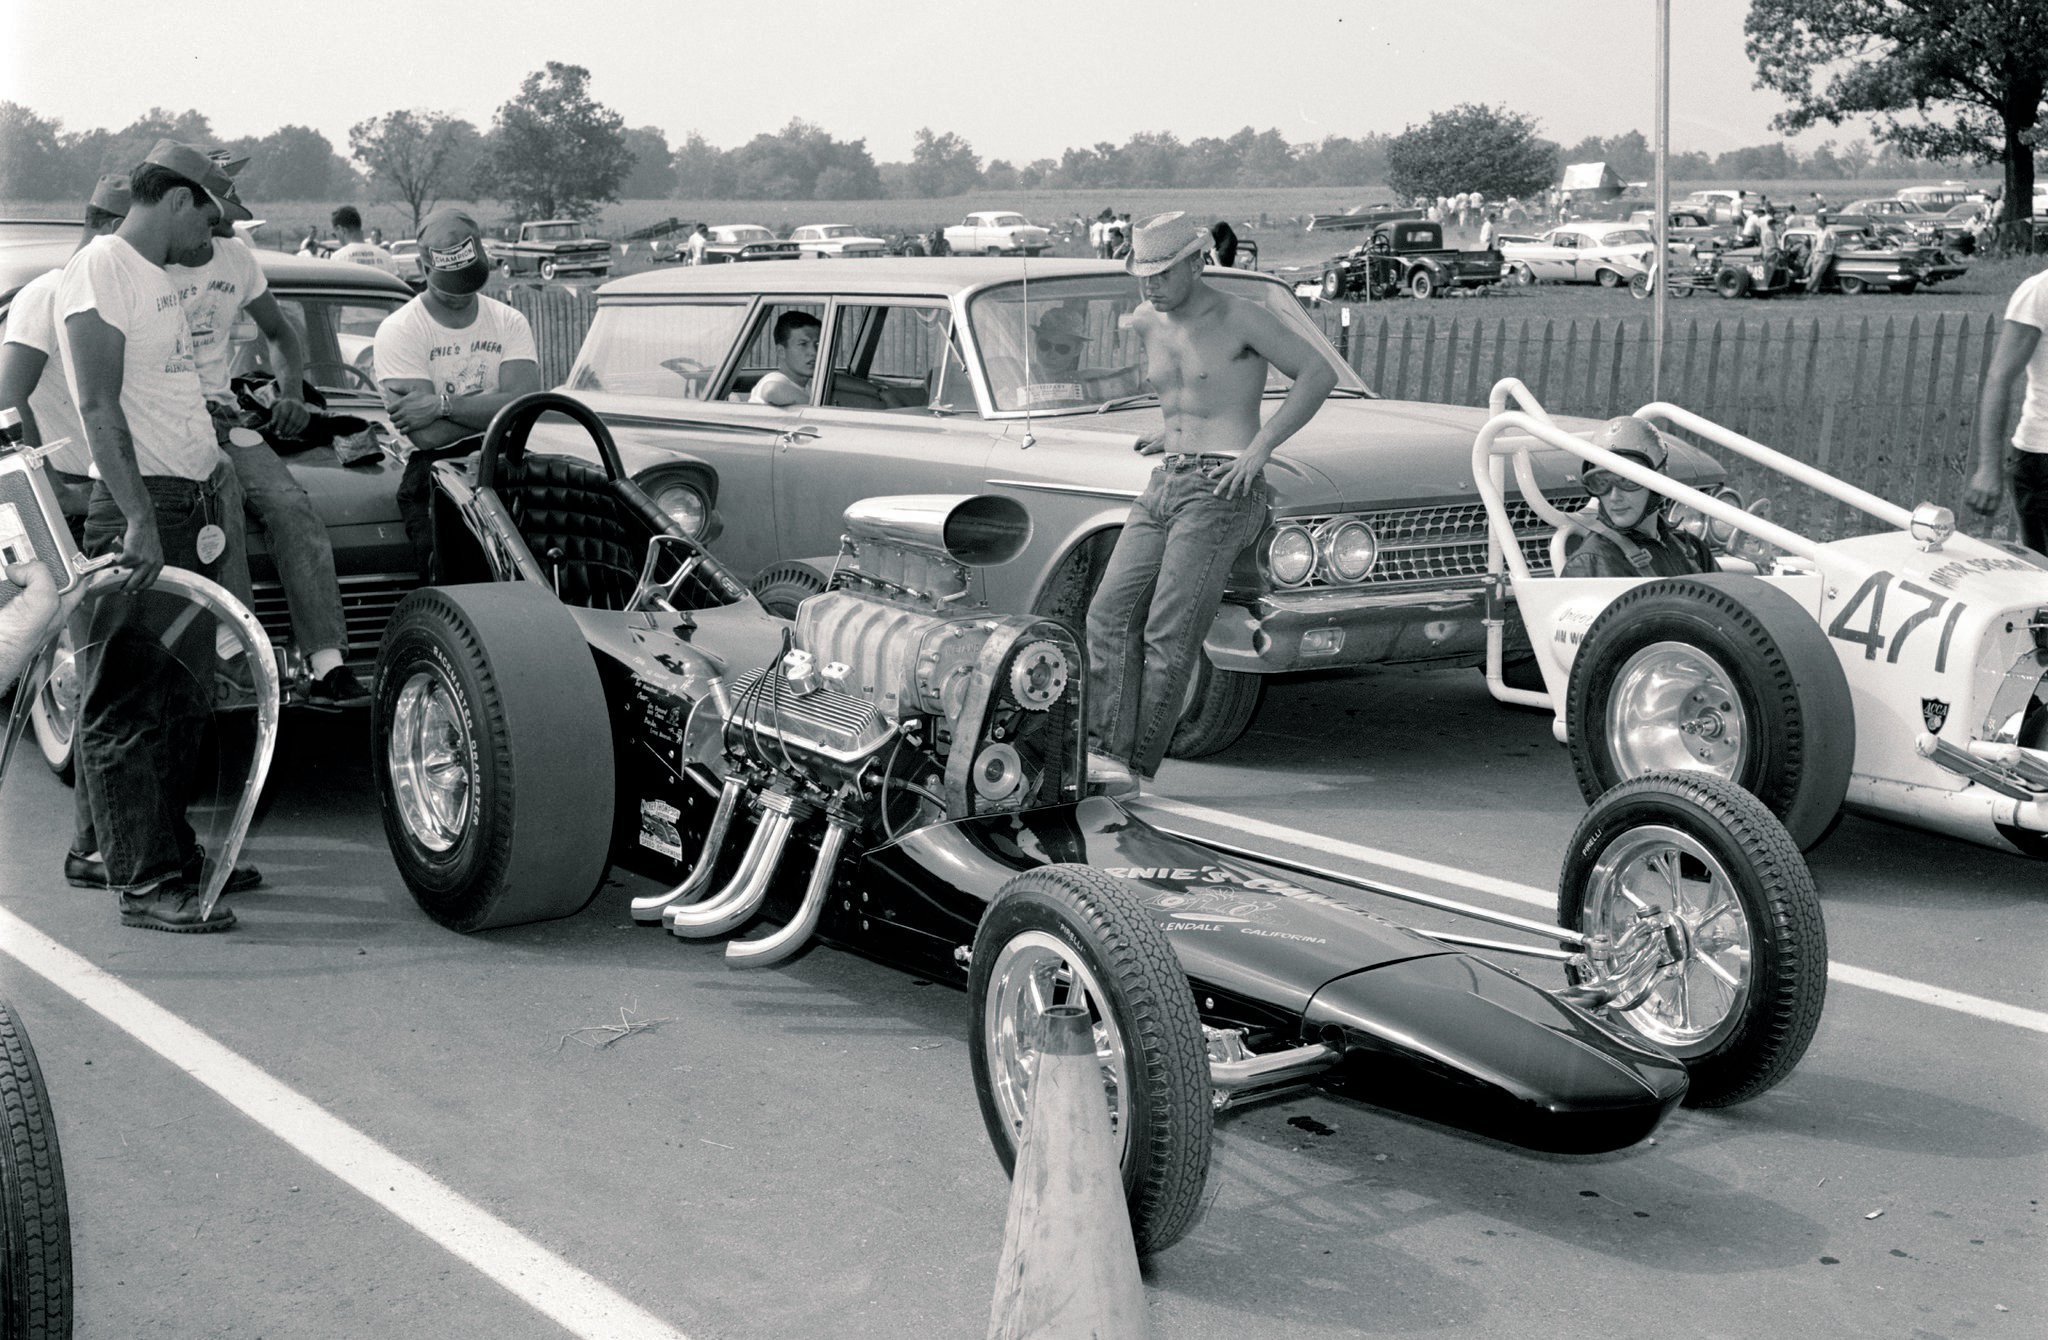 "This comparison of early '60s slingshots only begins to illustrate the impact of Kent Fuller's single-hoop chassis, Chuck Jones' design for the first ""'chute-pack"" tail section, and the only dragster body that Lujie Lesovsky ever built. Crew chief Rosy Hroscikoski put the pieces together and tuned one of the last competitive Pontiacs in both Top Gas and Top Fuel Eliminators, thereby earning the Shudder Bug's nickname of ""Eighth Wonder of the World."" Ernie Alvarado paid the freight with earnings from his Glendale, California, store, Ernie's Camera Shop. Tommy Ivo drove first, then Bill Alexander, who recalled how it never went straight unless he cranked the butterfly wheel hard to one side. Wild Bill ran out of luck at San Fernando, totaling the car that most influenced dragster design during the first slingshot era, and to this day in nostalgia racing. (Yeah, we're fudging the rules a bit by plucking a photo from late 1961 because the other driver looks so goshdarn envious, and we don't recall seeing this NHR"